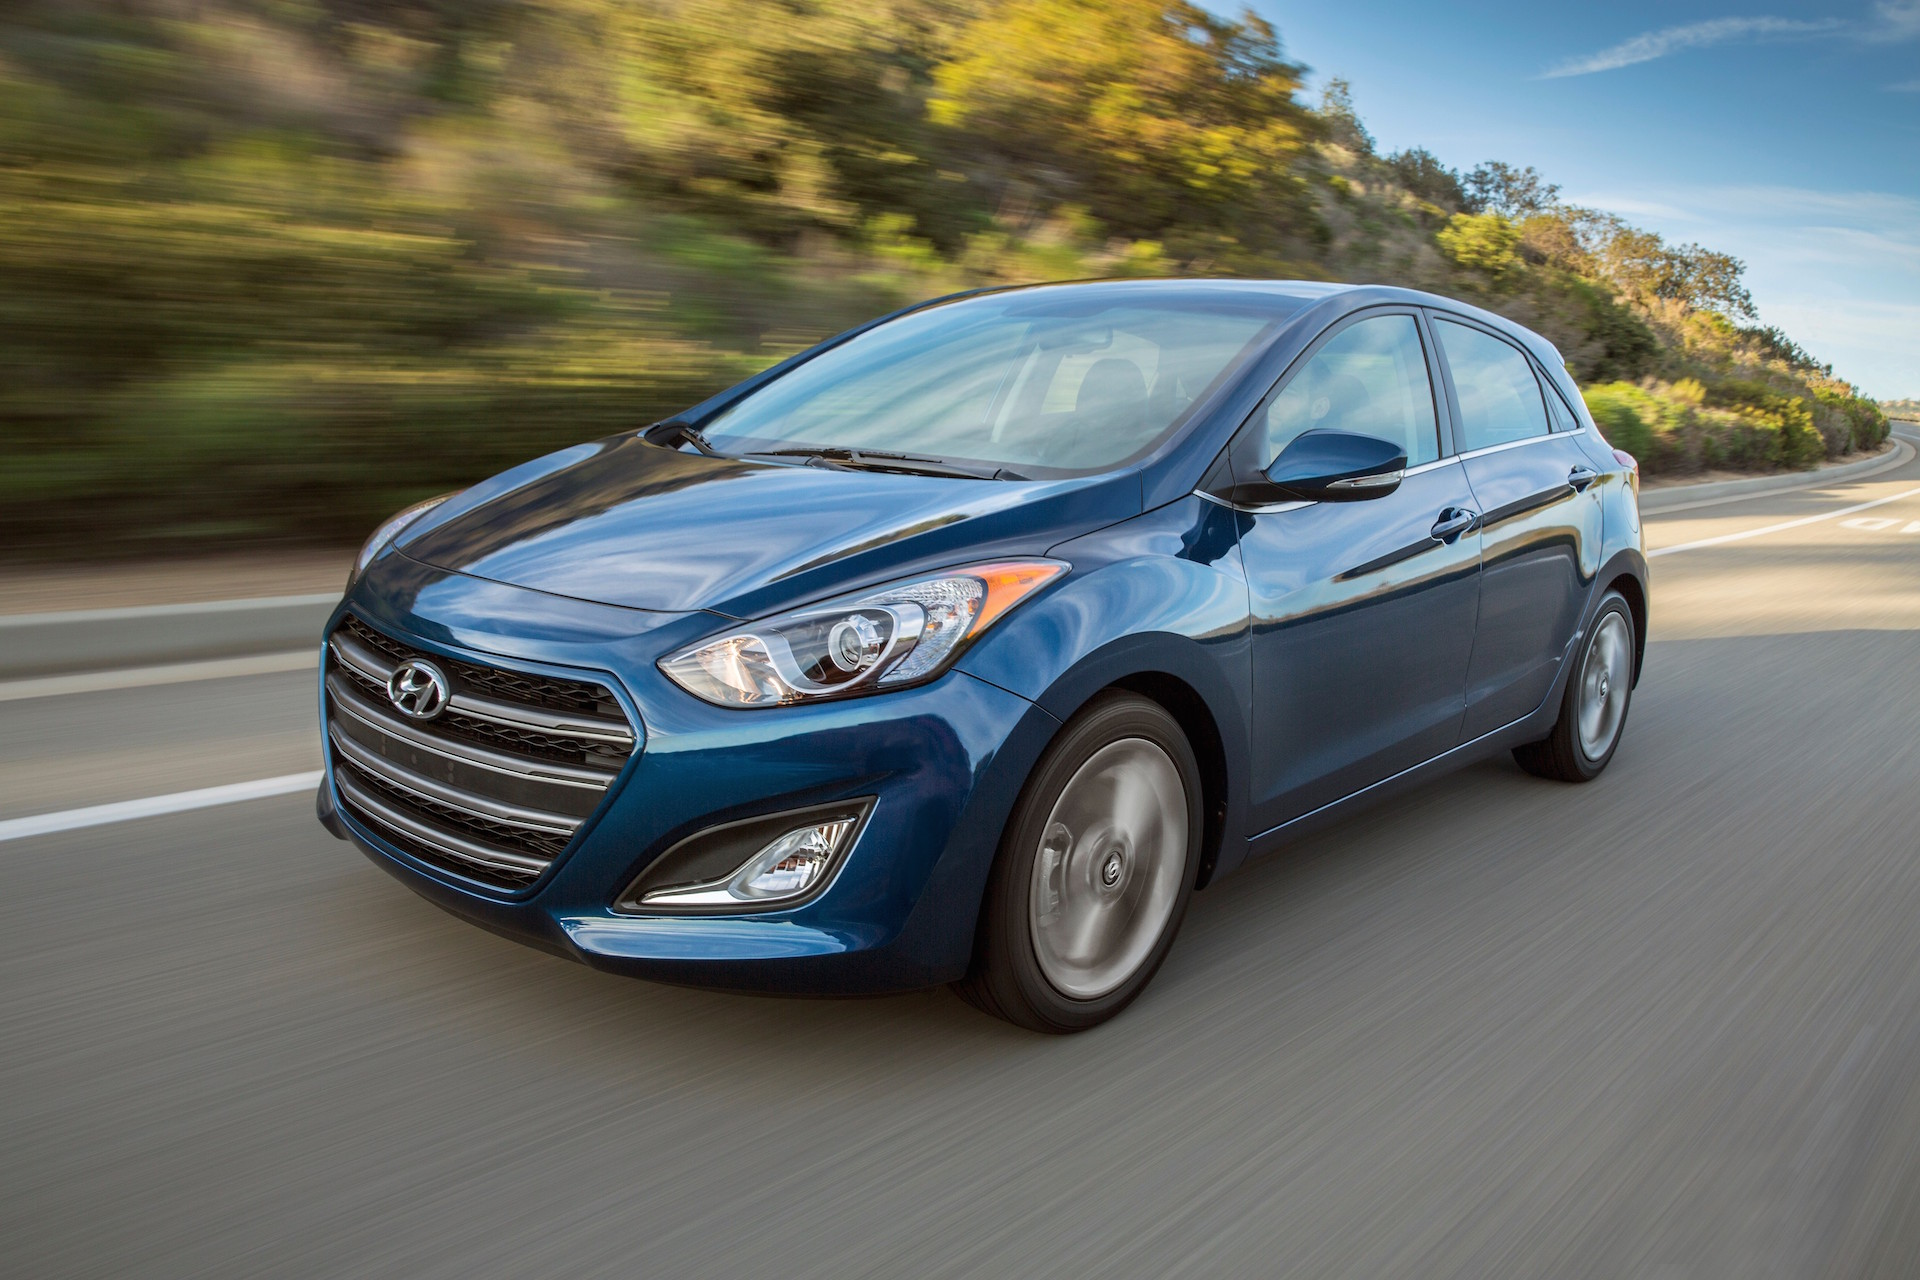 2016 Hyundai Elantra GT Review, Ratings, Specs, Prices, and Photos